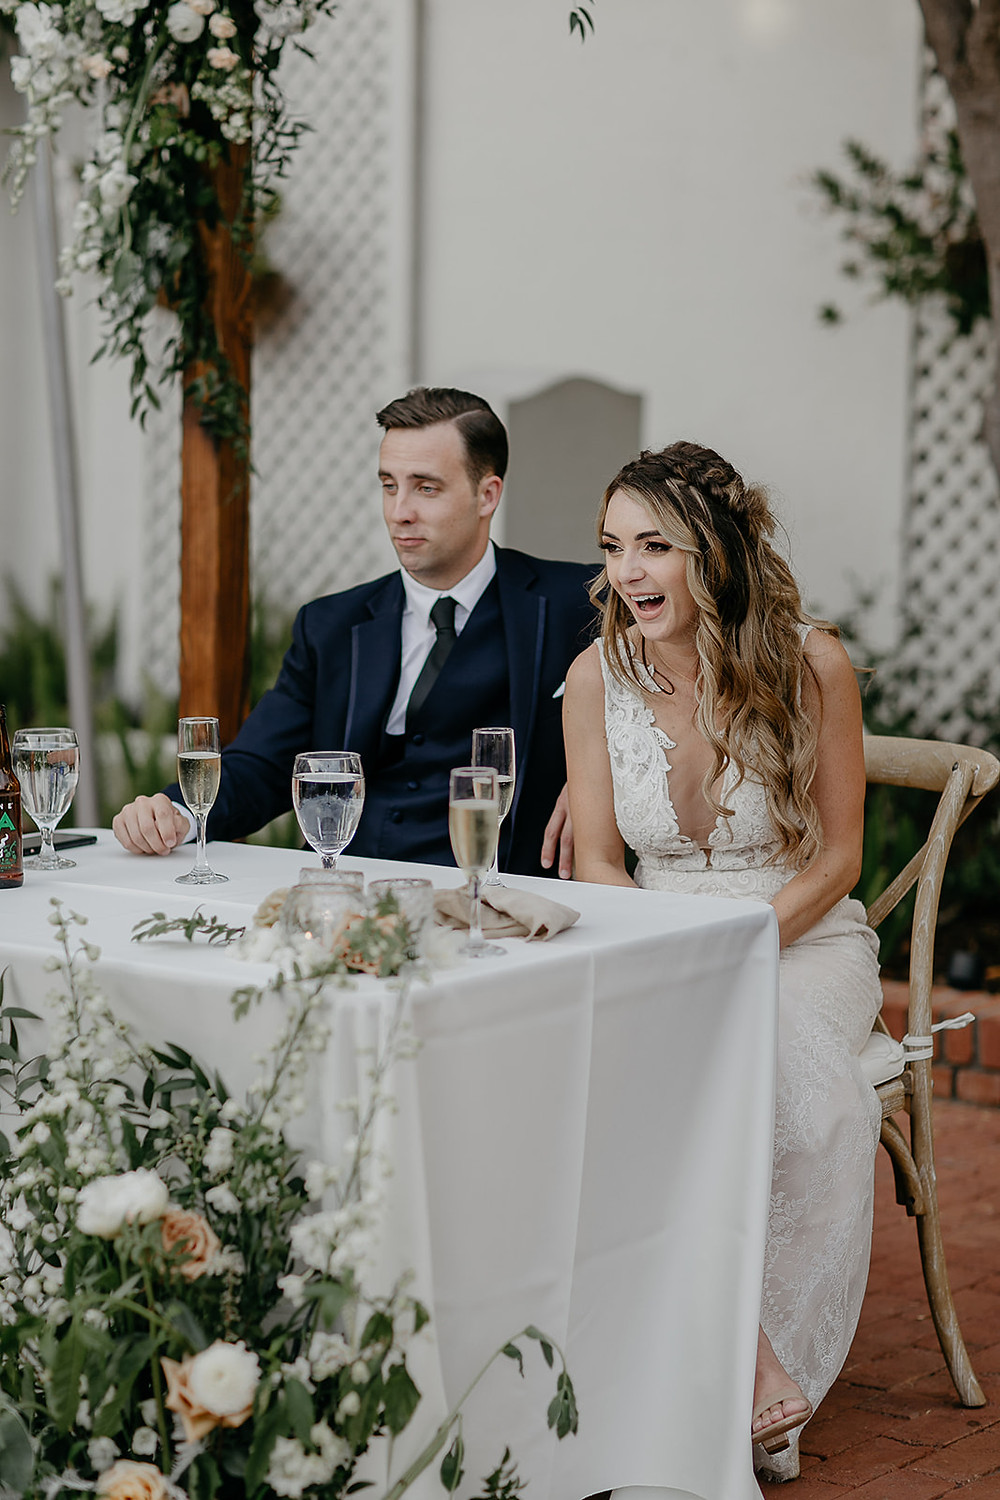 Kristine + Taylor's Rustic San Diego Wedding at Darlington House